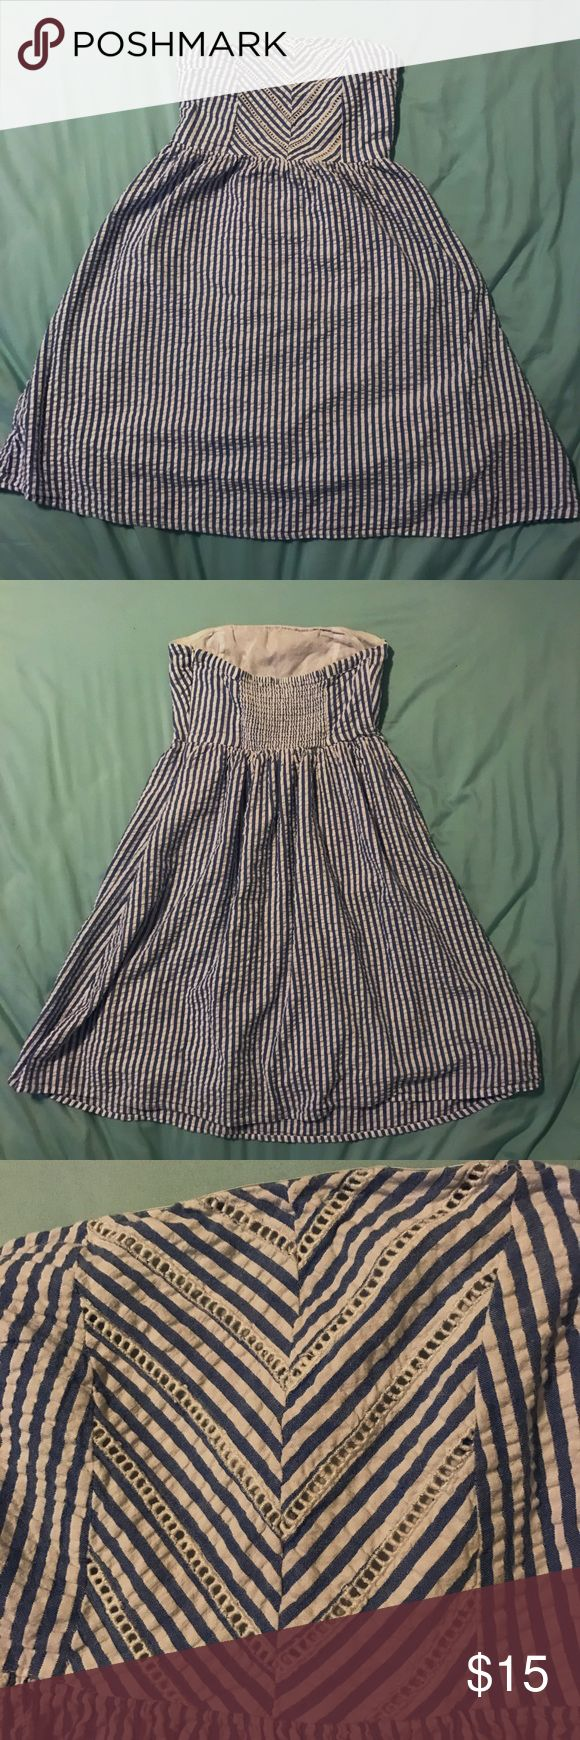 Strapless Blue and White Striped Dress Preppy and adorable dress! Size 2 and Strapless, great for any spring and summer occasion! Can be dressed up and down. Offers are welcome! Old Navy Dresses Strapless